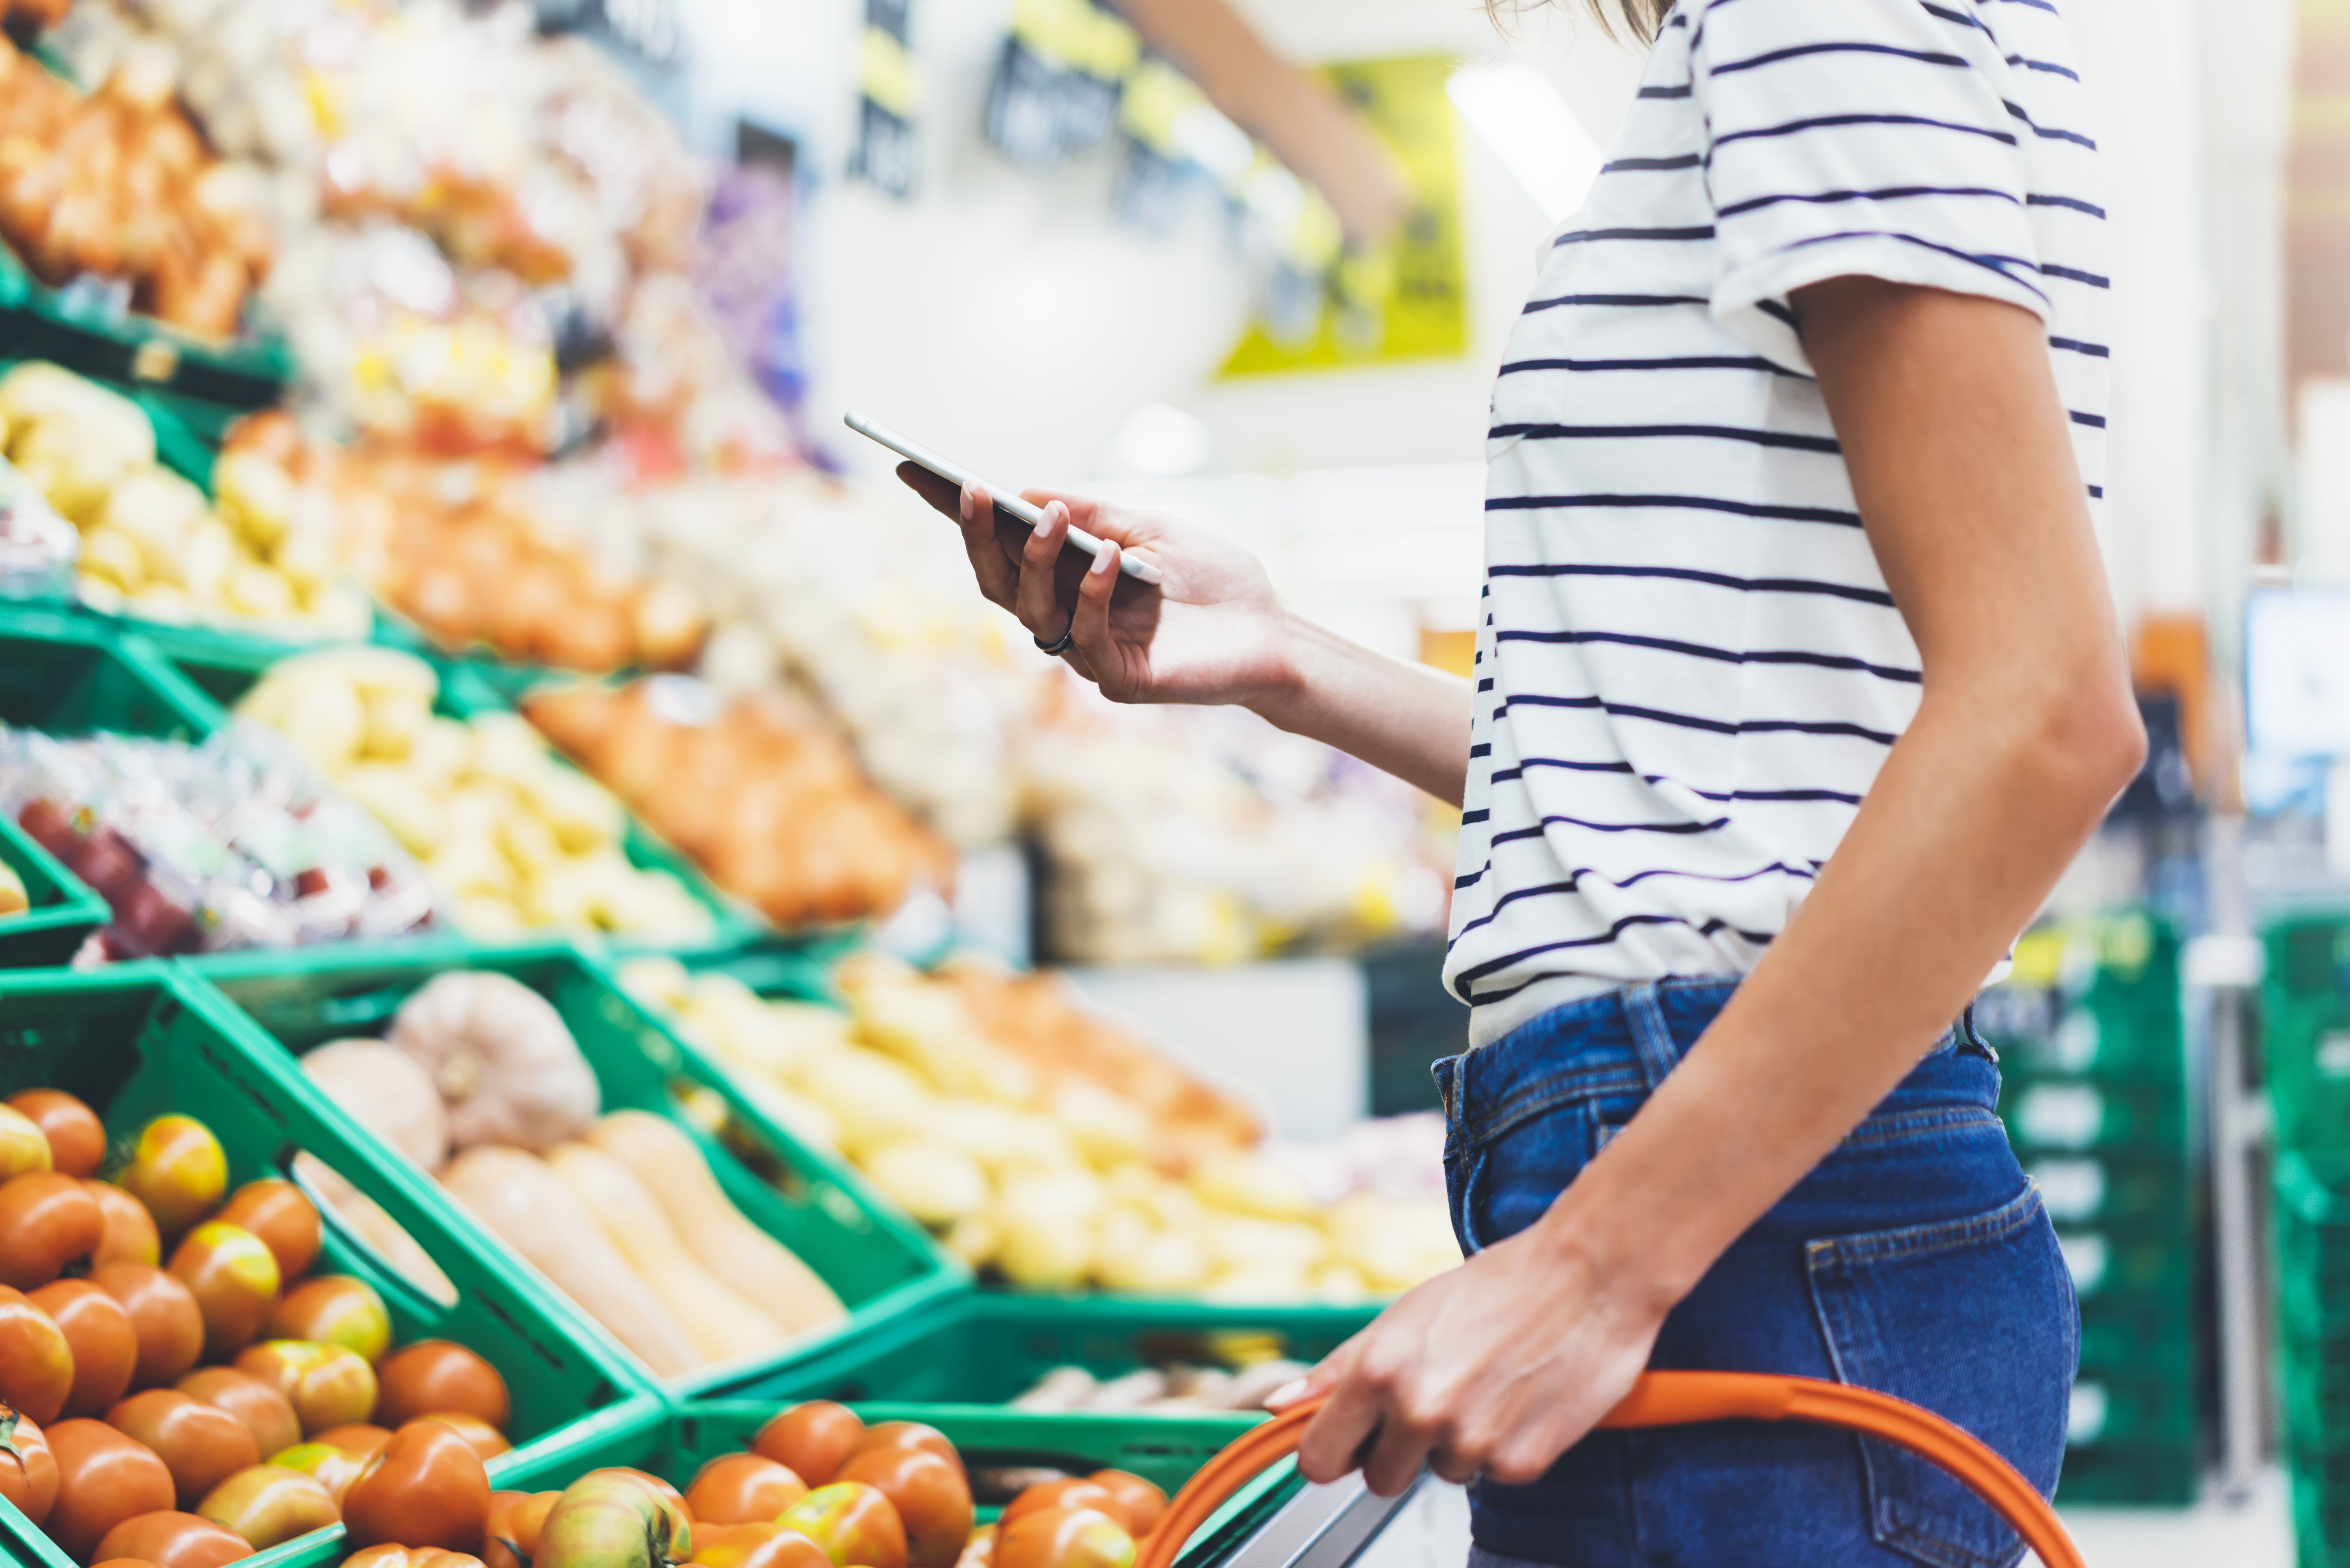 woman shopping and looking at food budget on phone